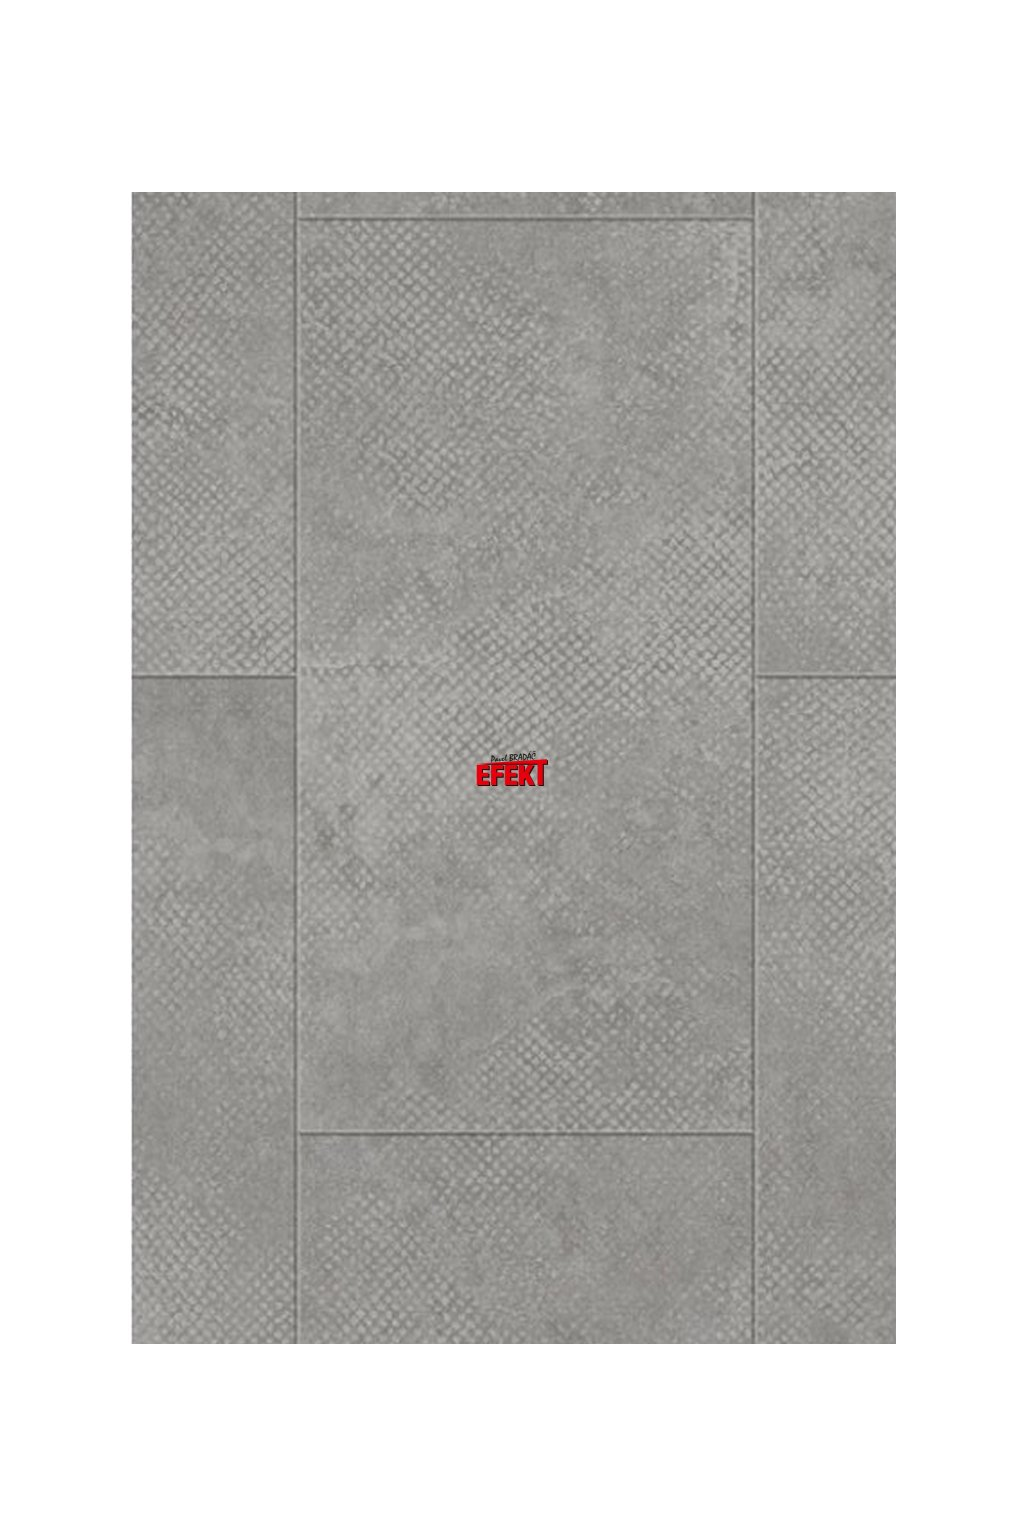 Gerflor Clic 30 Staccato